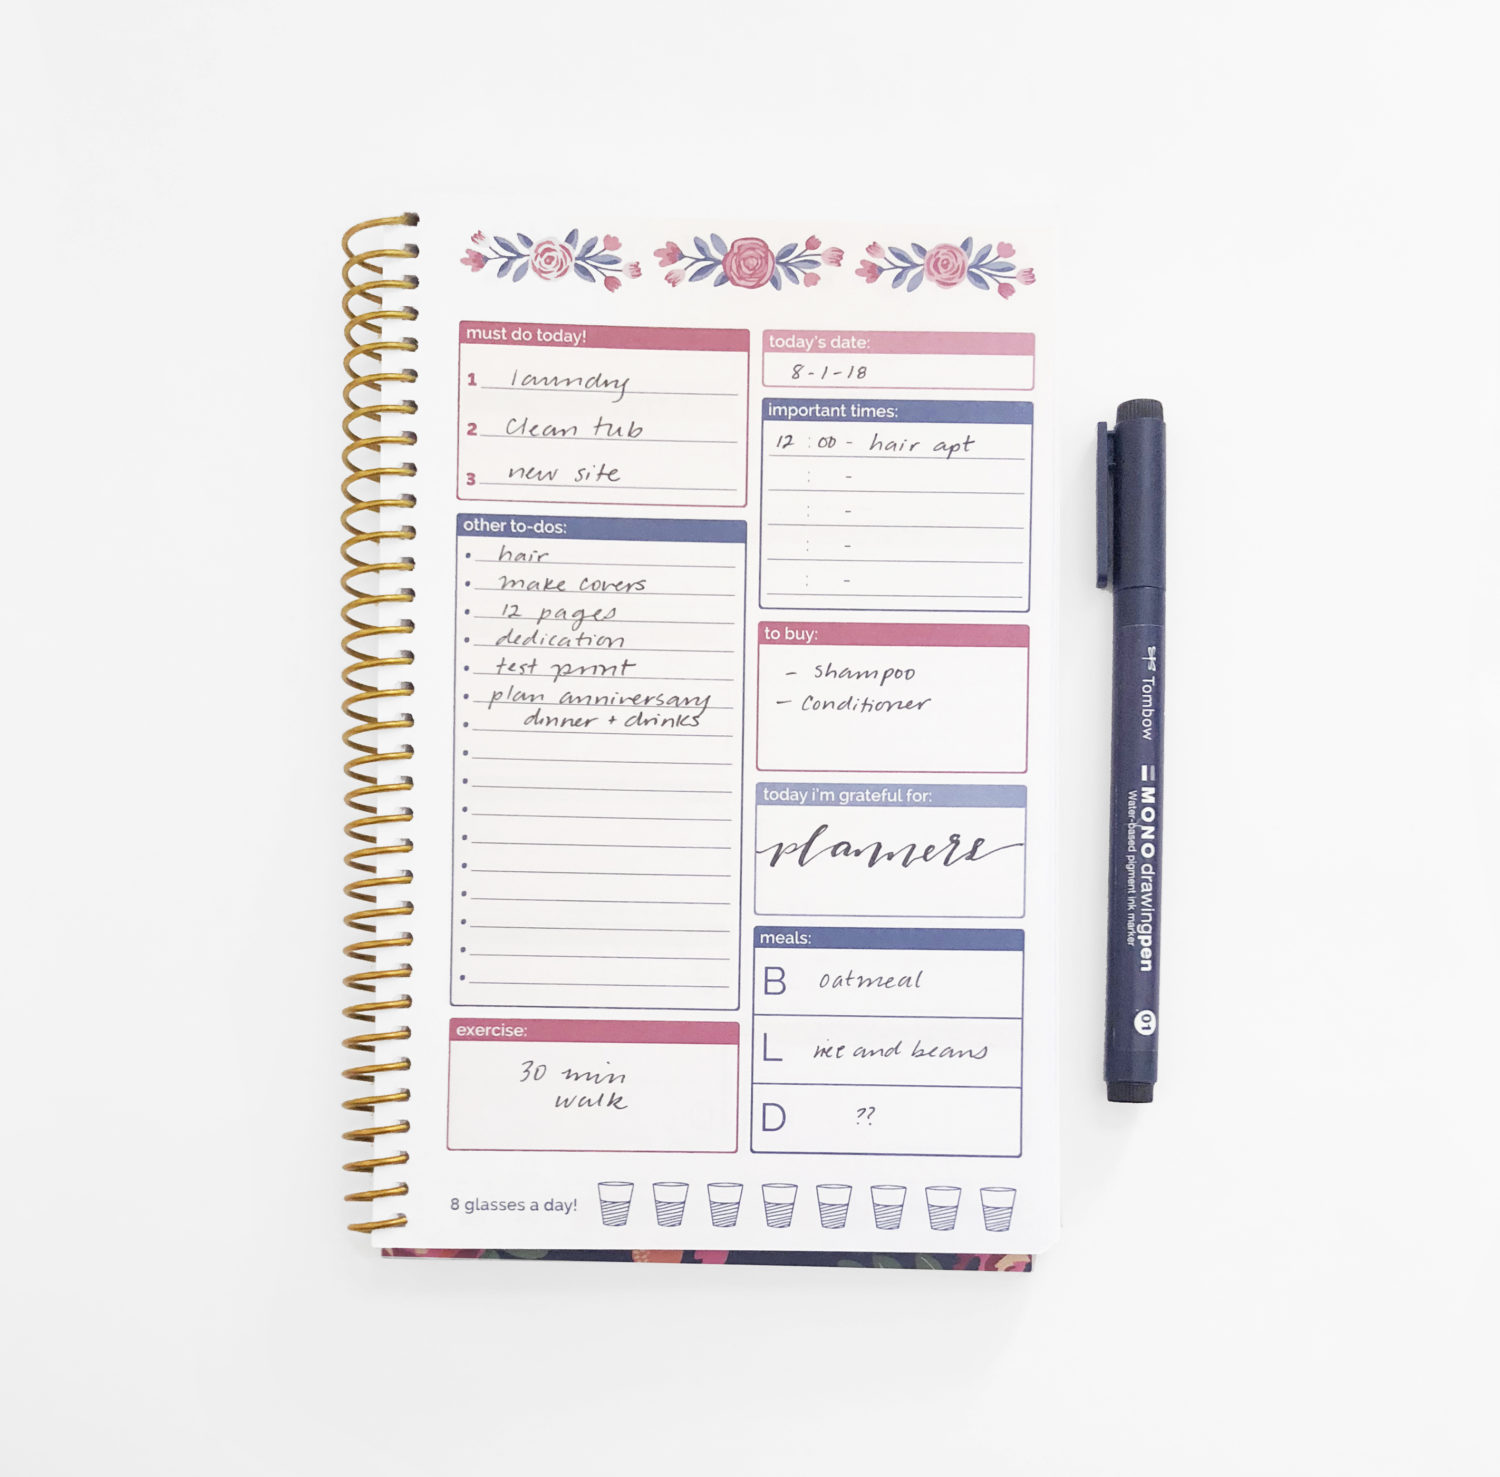 3 ways to organize your life with tombow and bloom daily planners